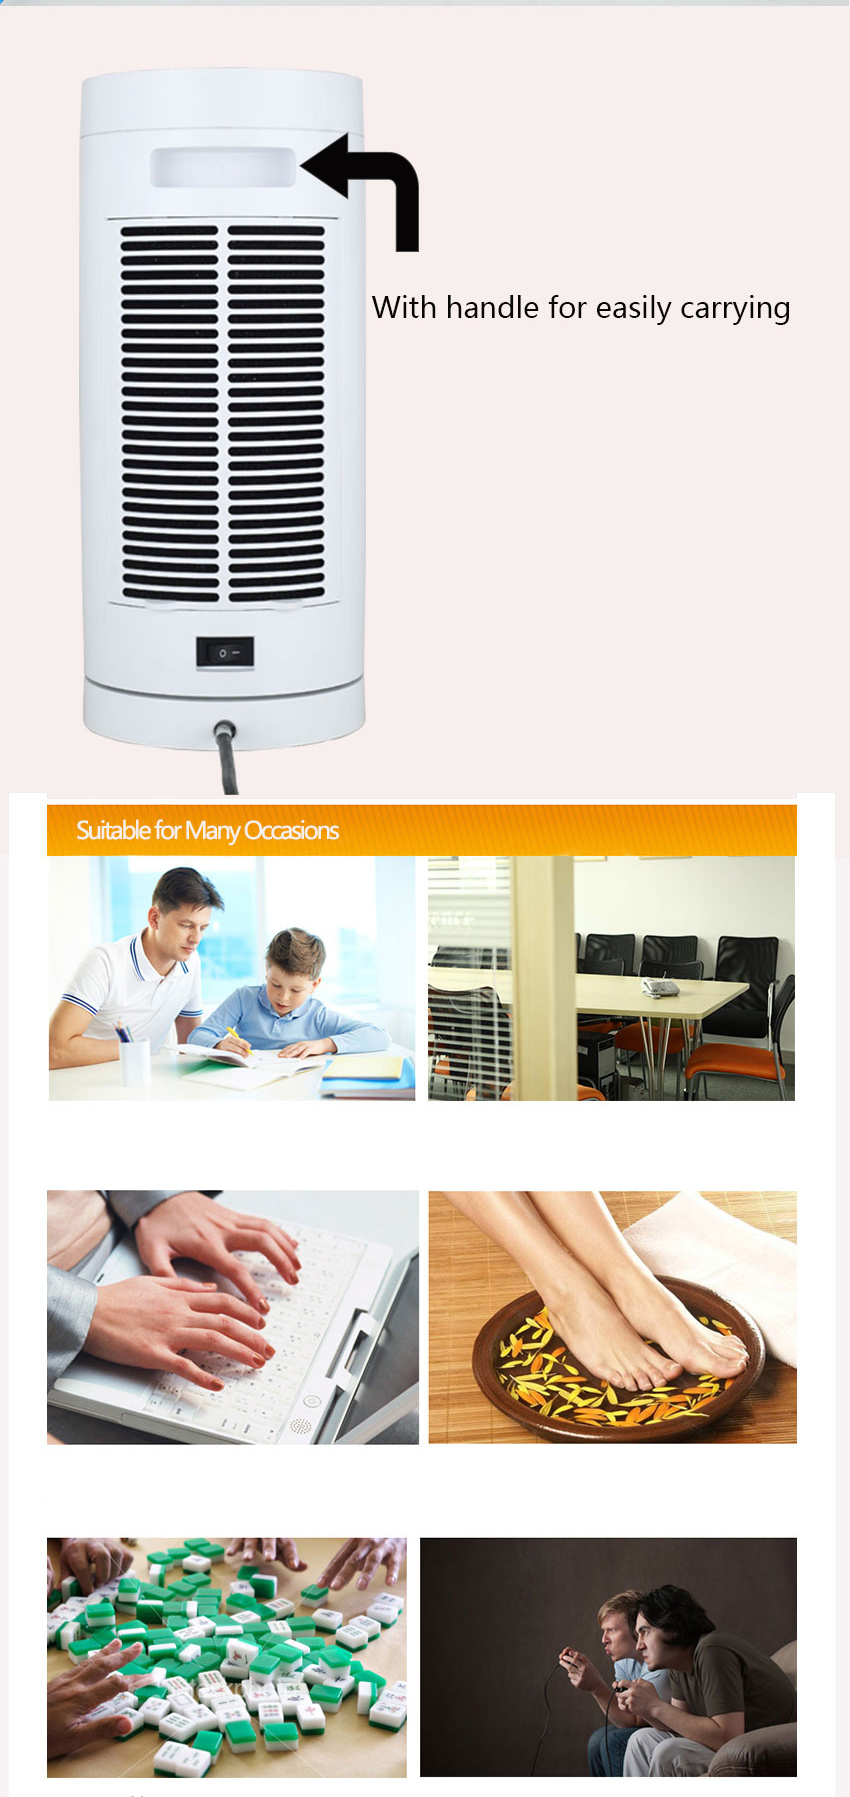 Made in china electrical appliances electric halogen heater electric fan ptc heater